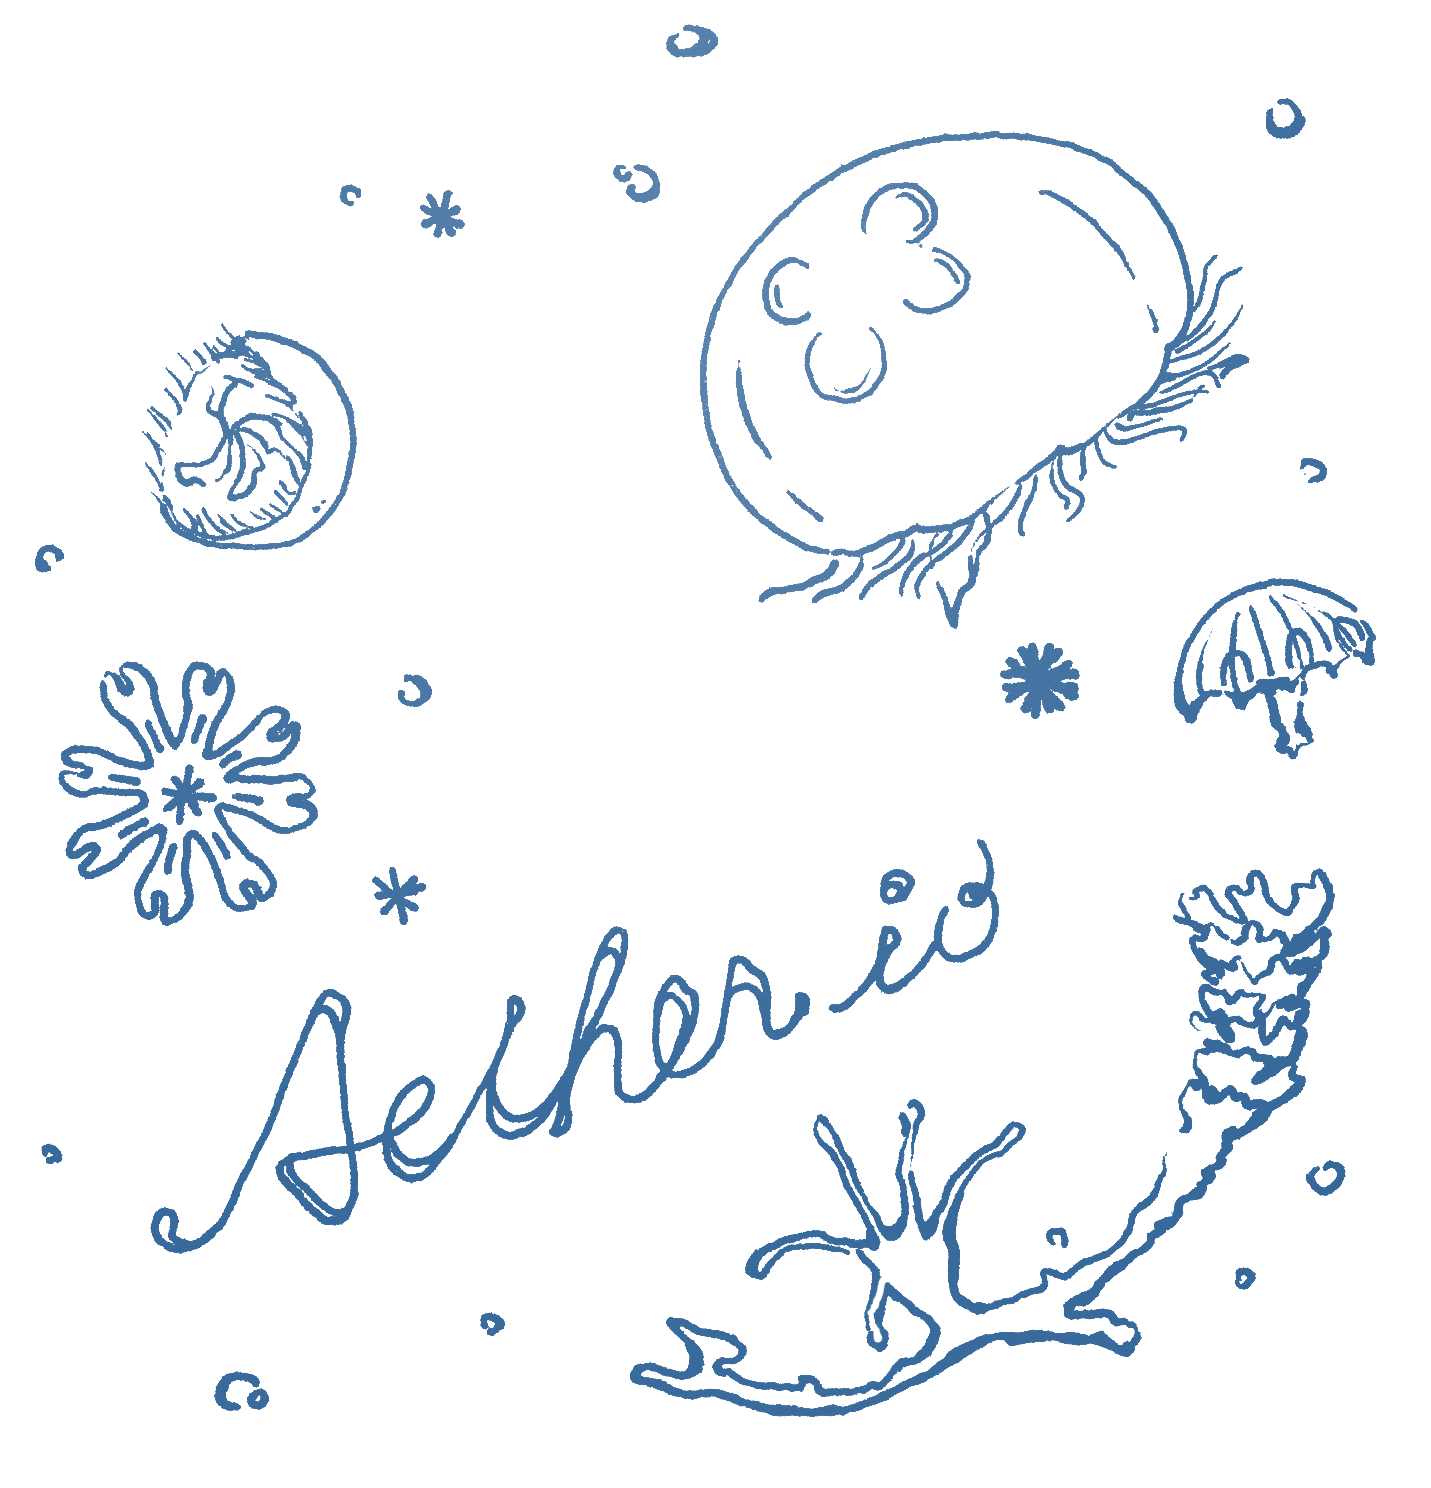 Aether io